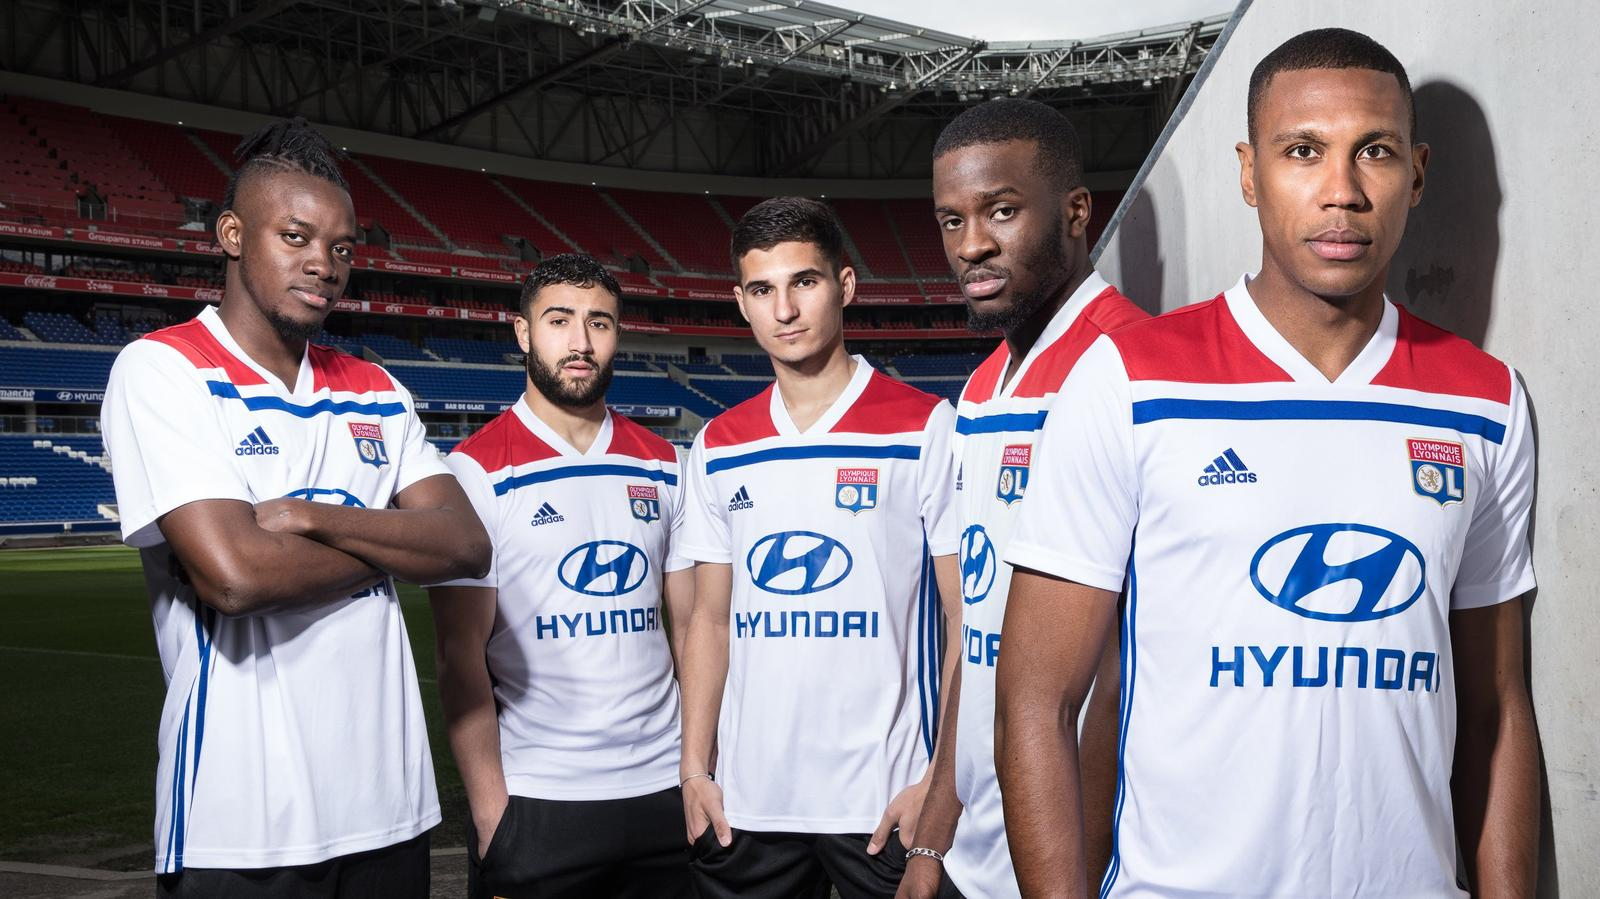 olympique-lyon-18-19-home-away-kits-1.jp